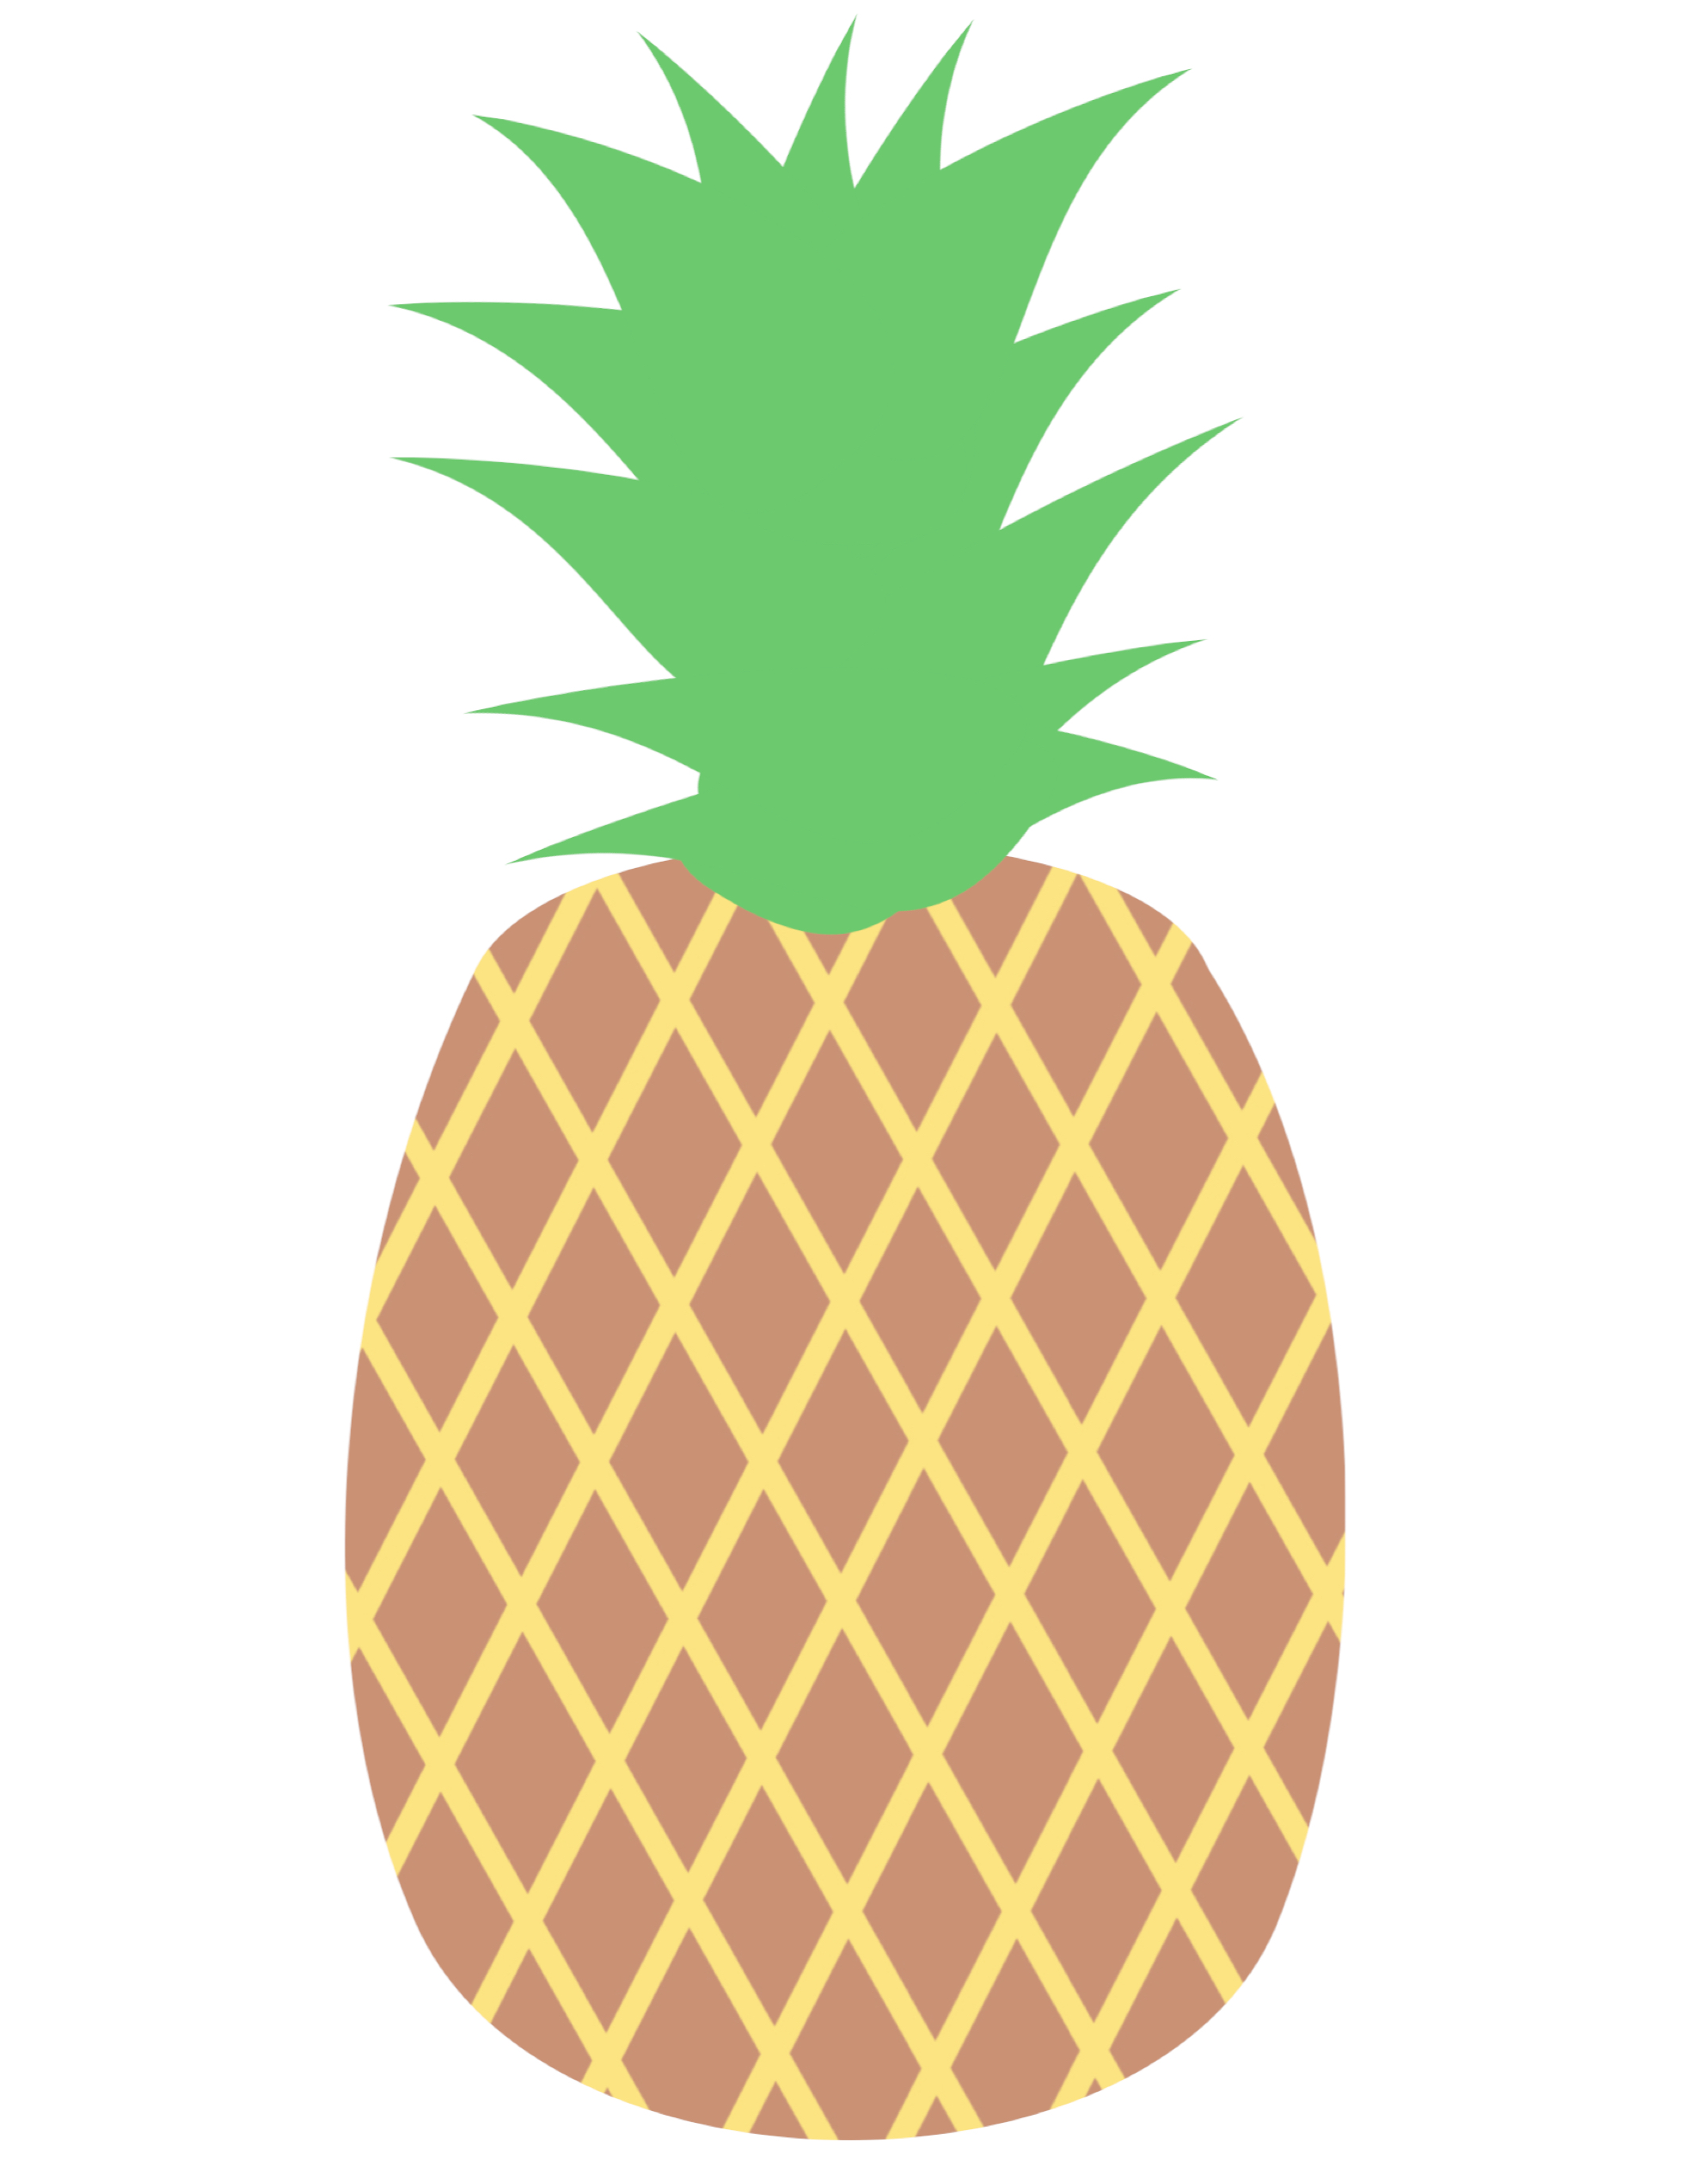 graphic about Printable Pineapple named Pineapple Get together Banner Cost-free Printable - Paper Path Style and design